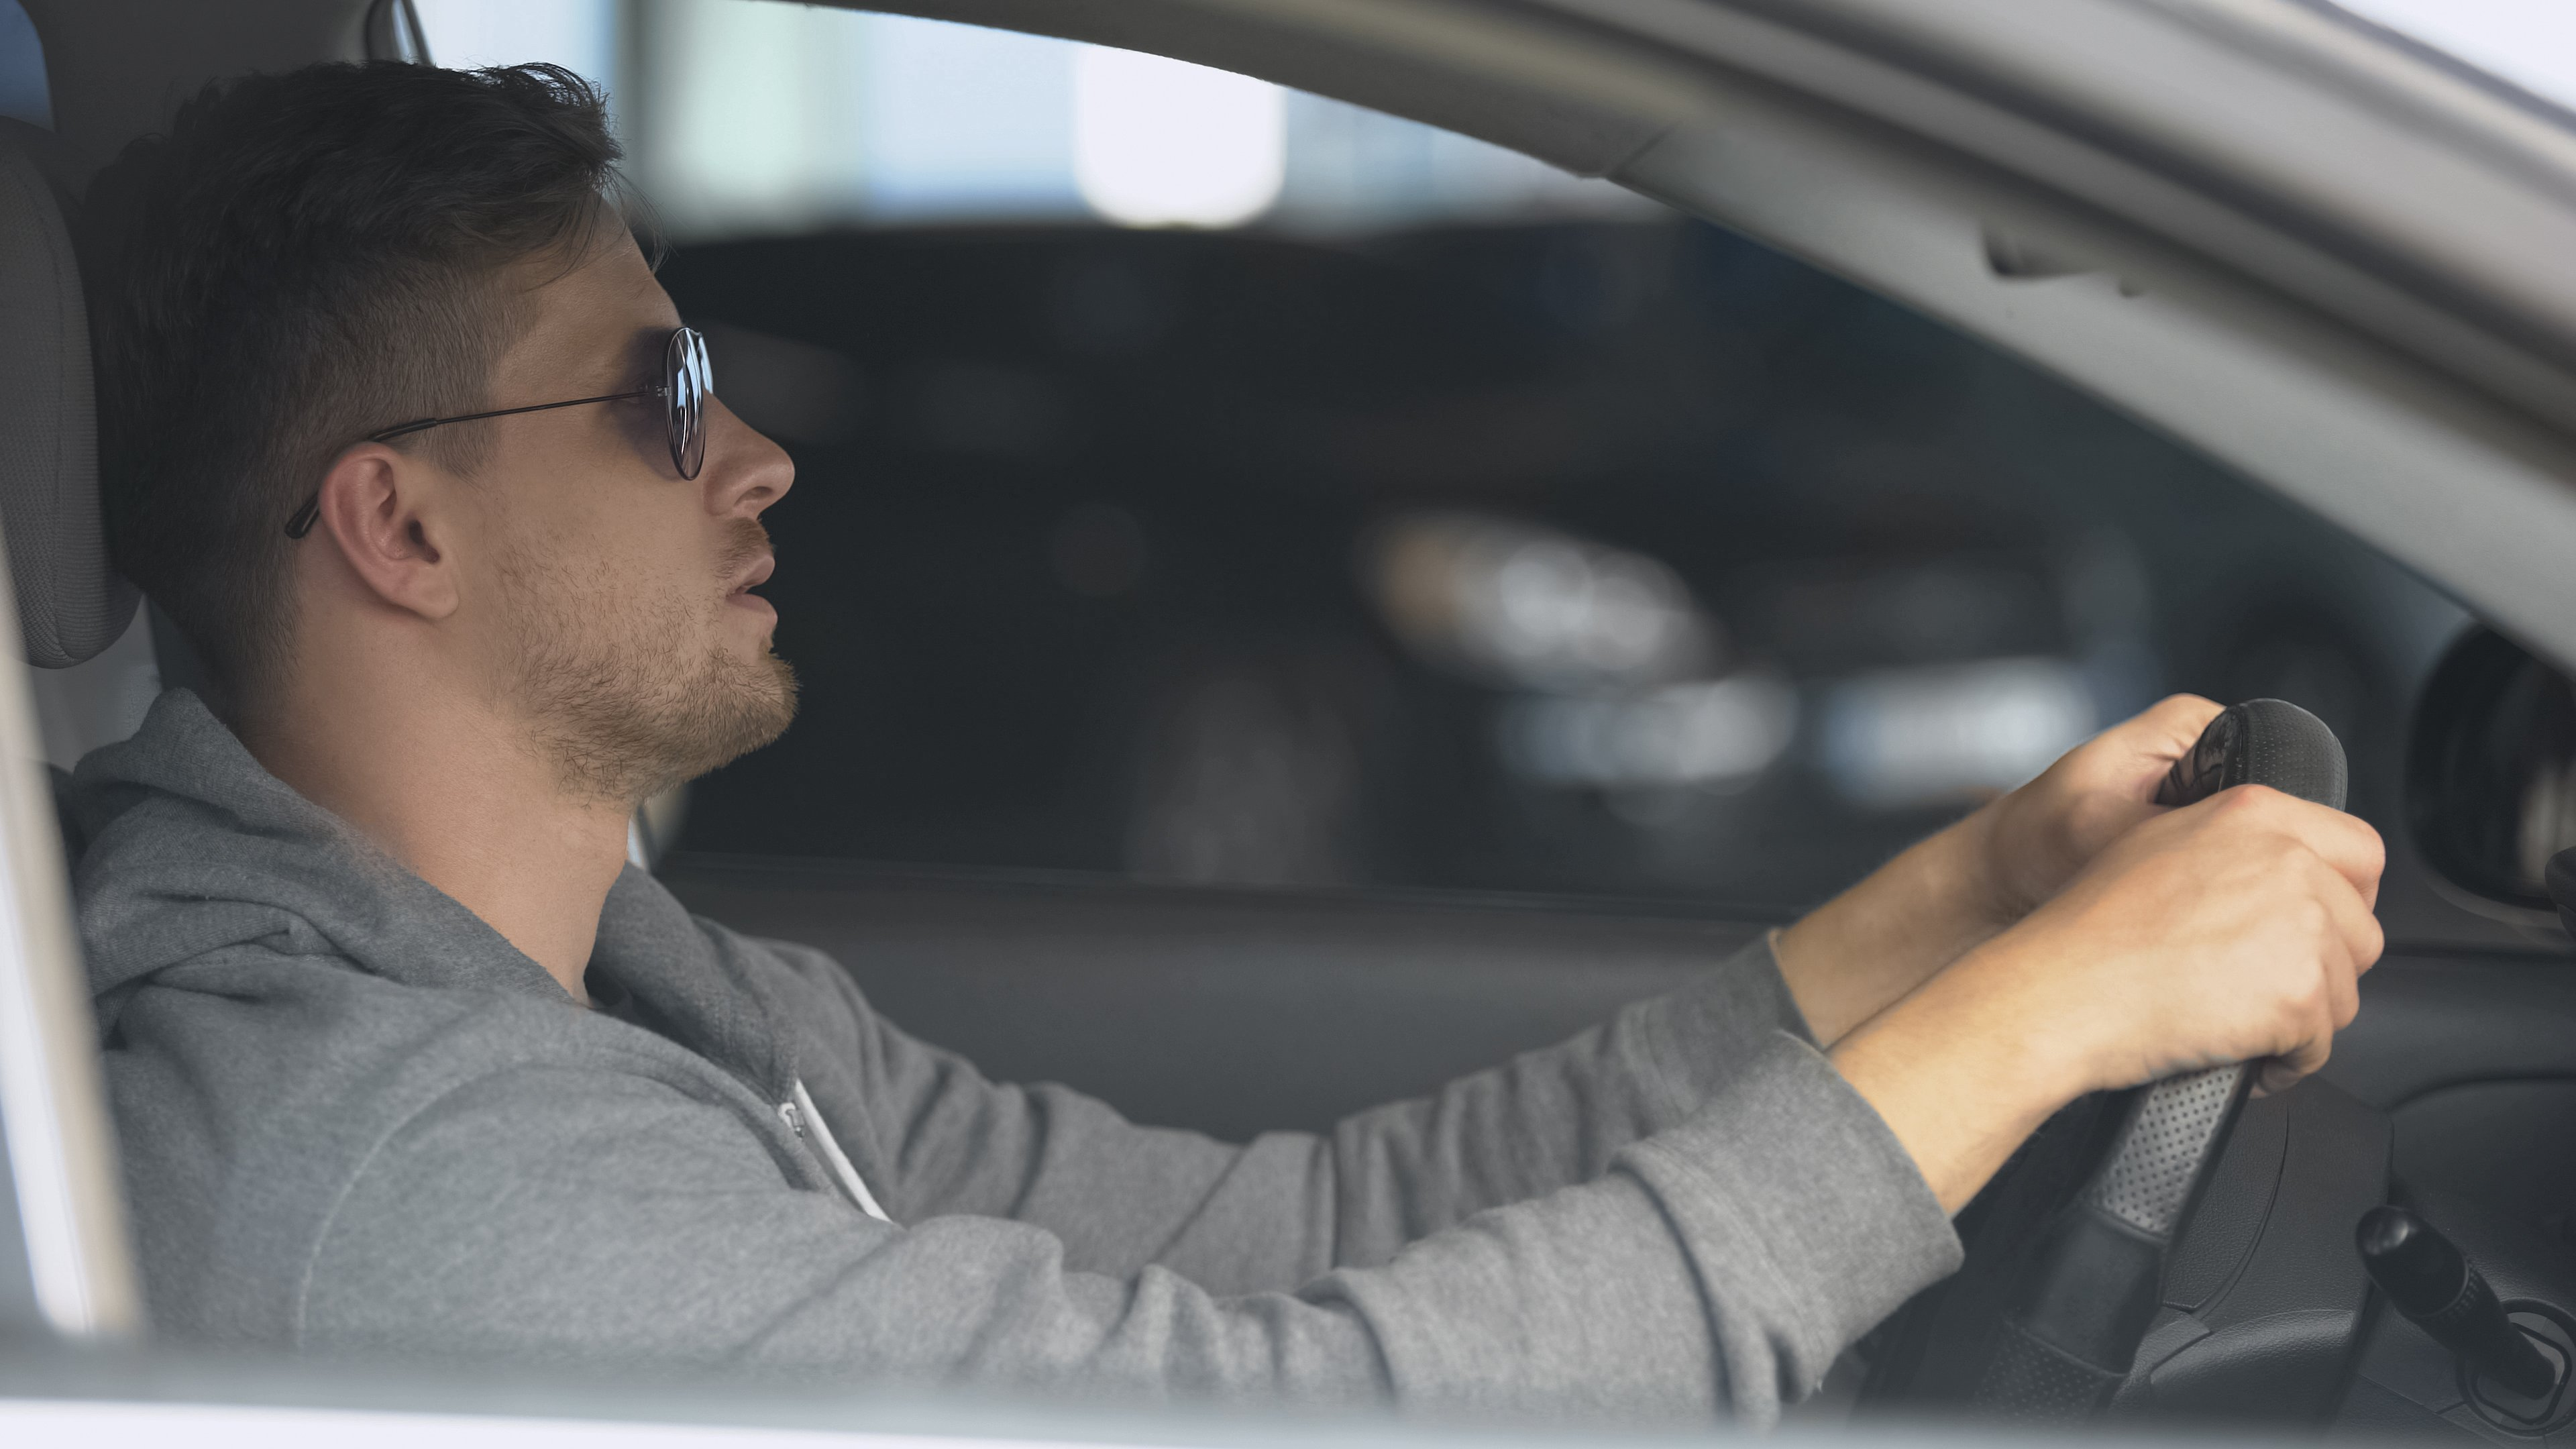 Man in sunglasses driving under the influence